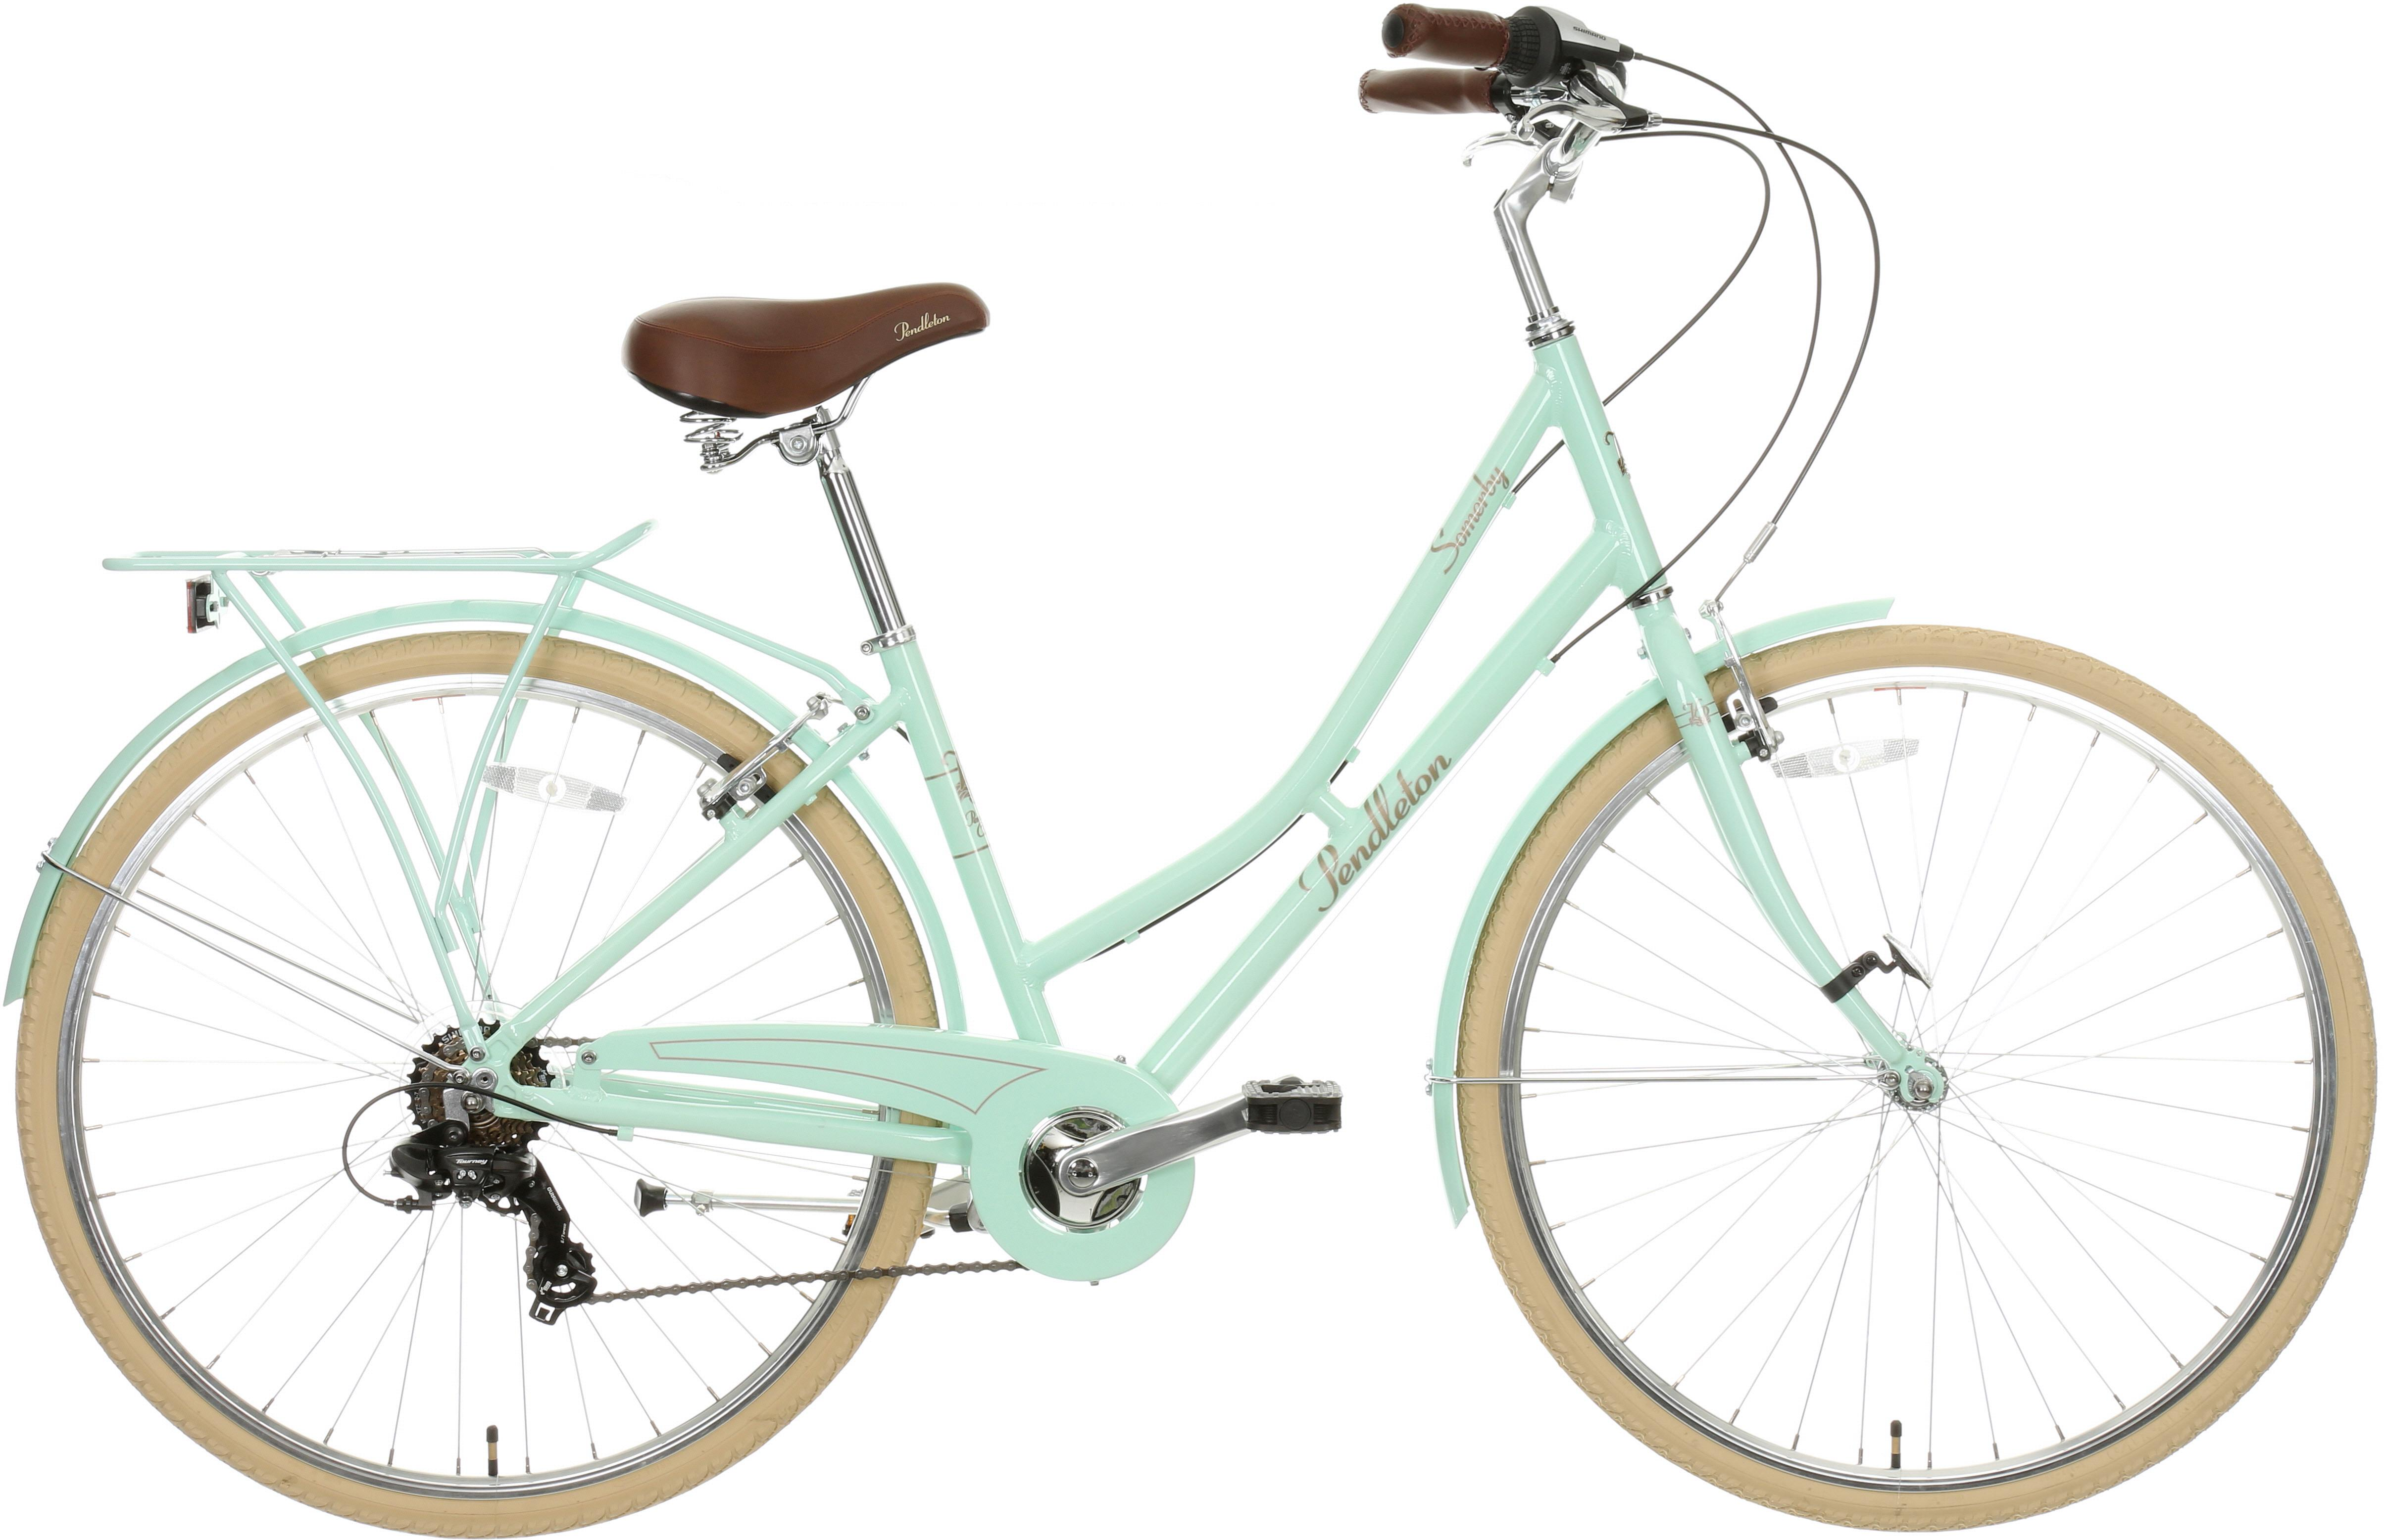 Pendleton Somerby Hybrid Bike - Mint 17 inch